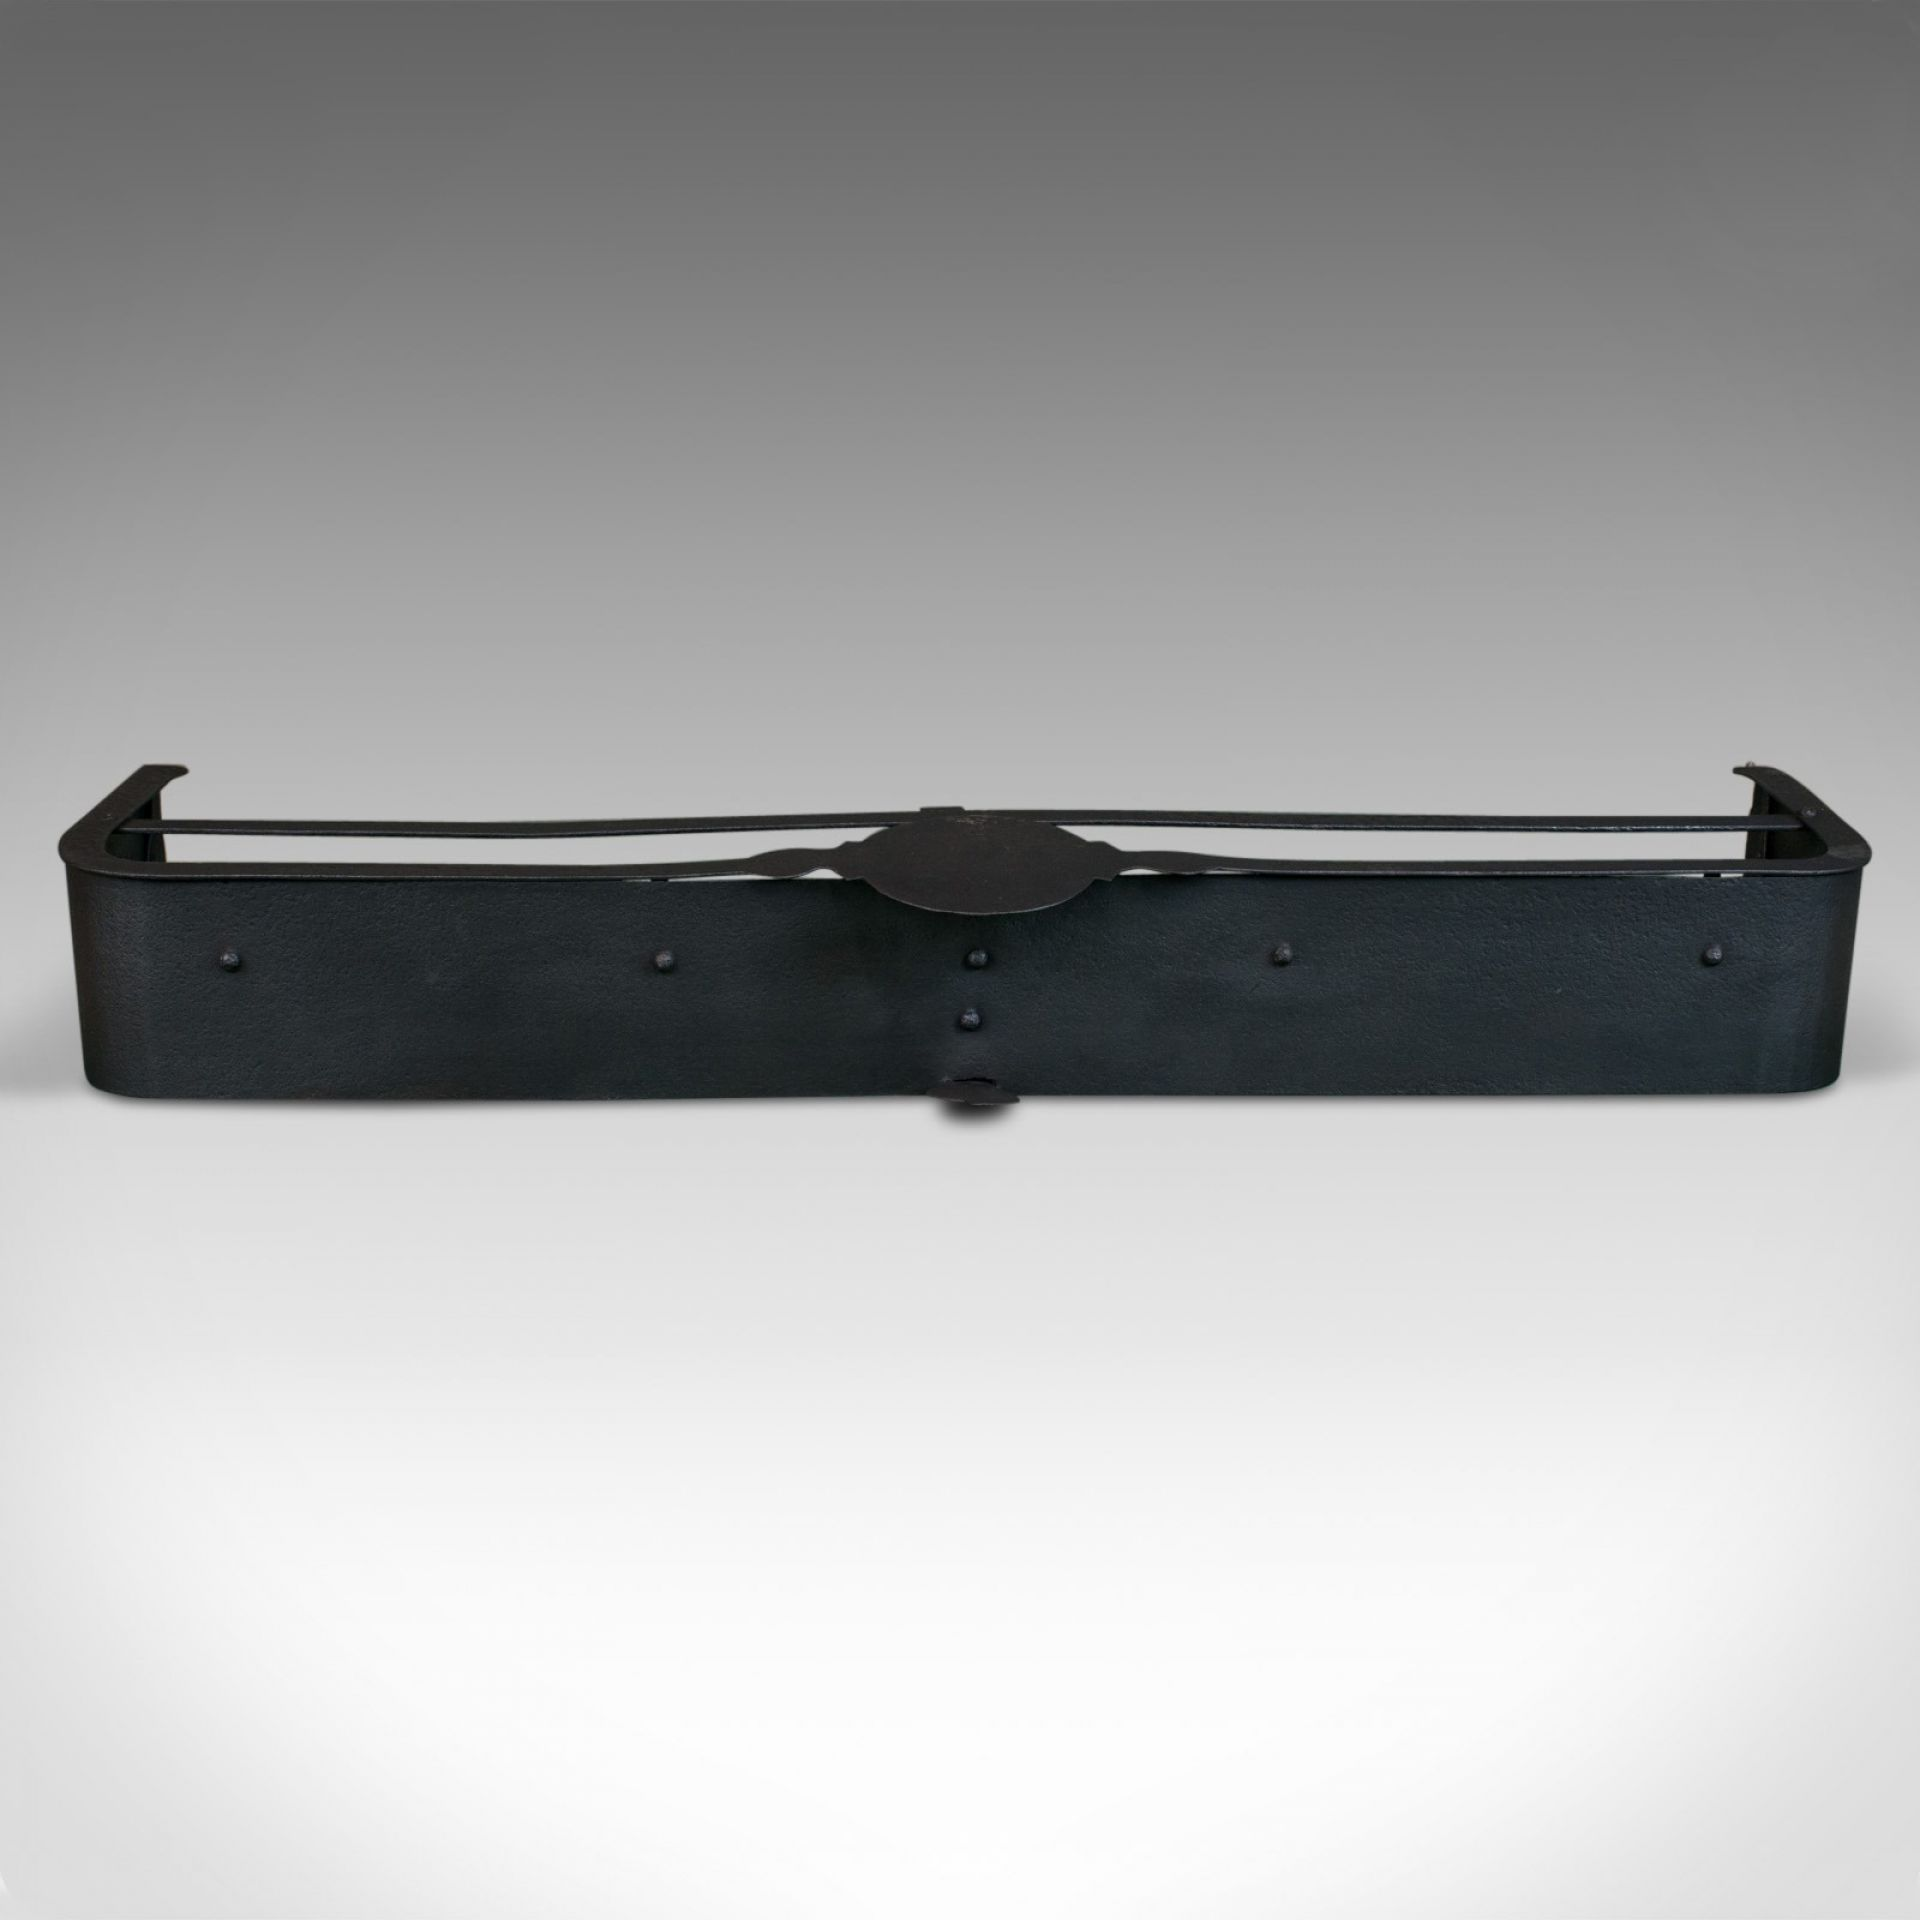 Antique Fire Surround, English, Victorian, Fender, Iron, Circa 1890